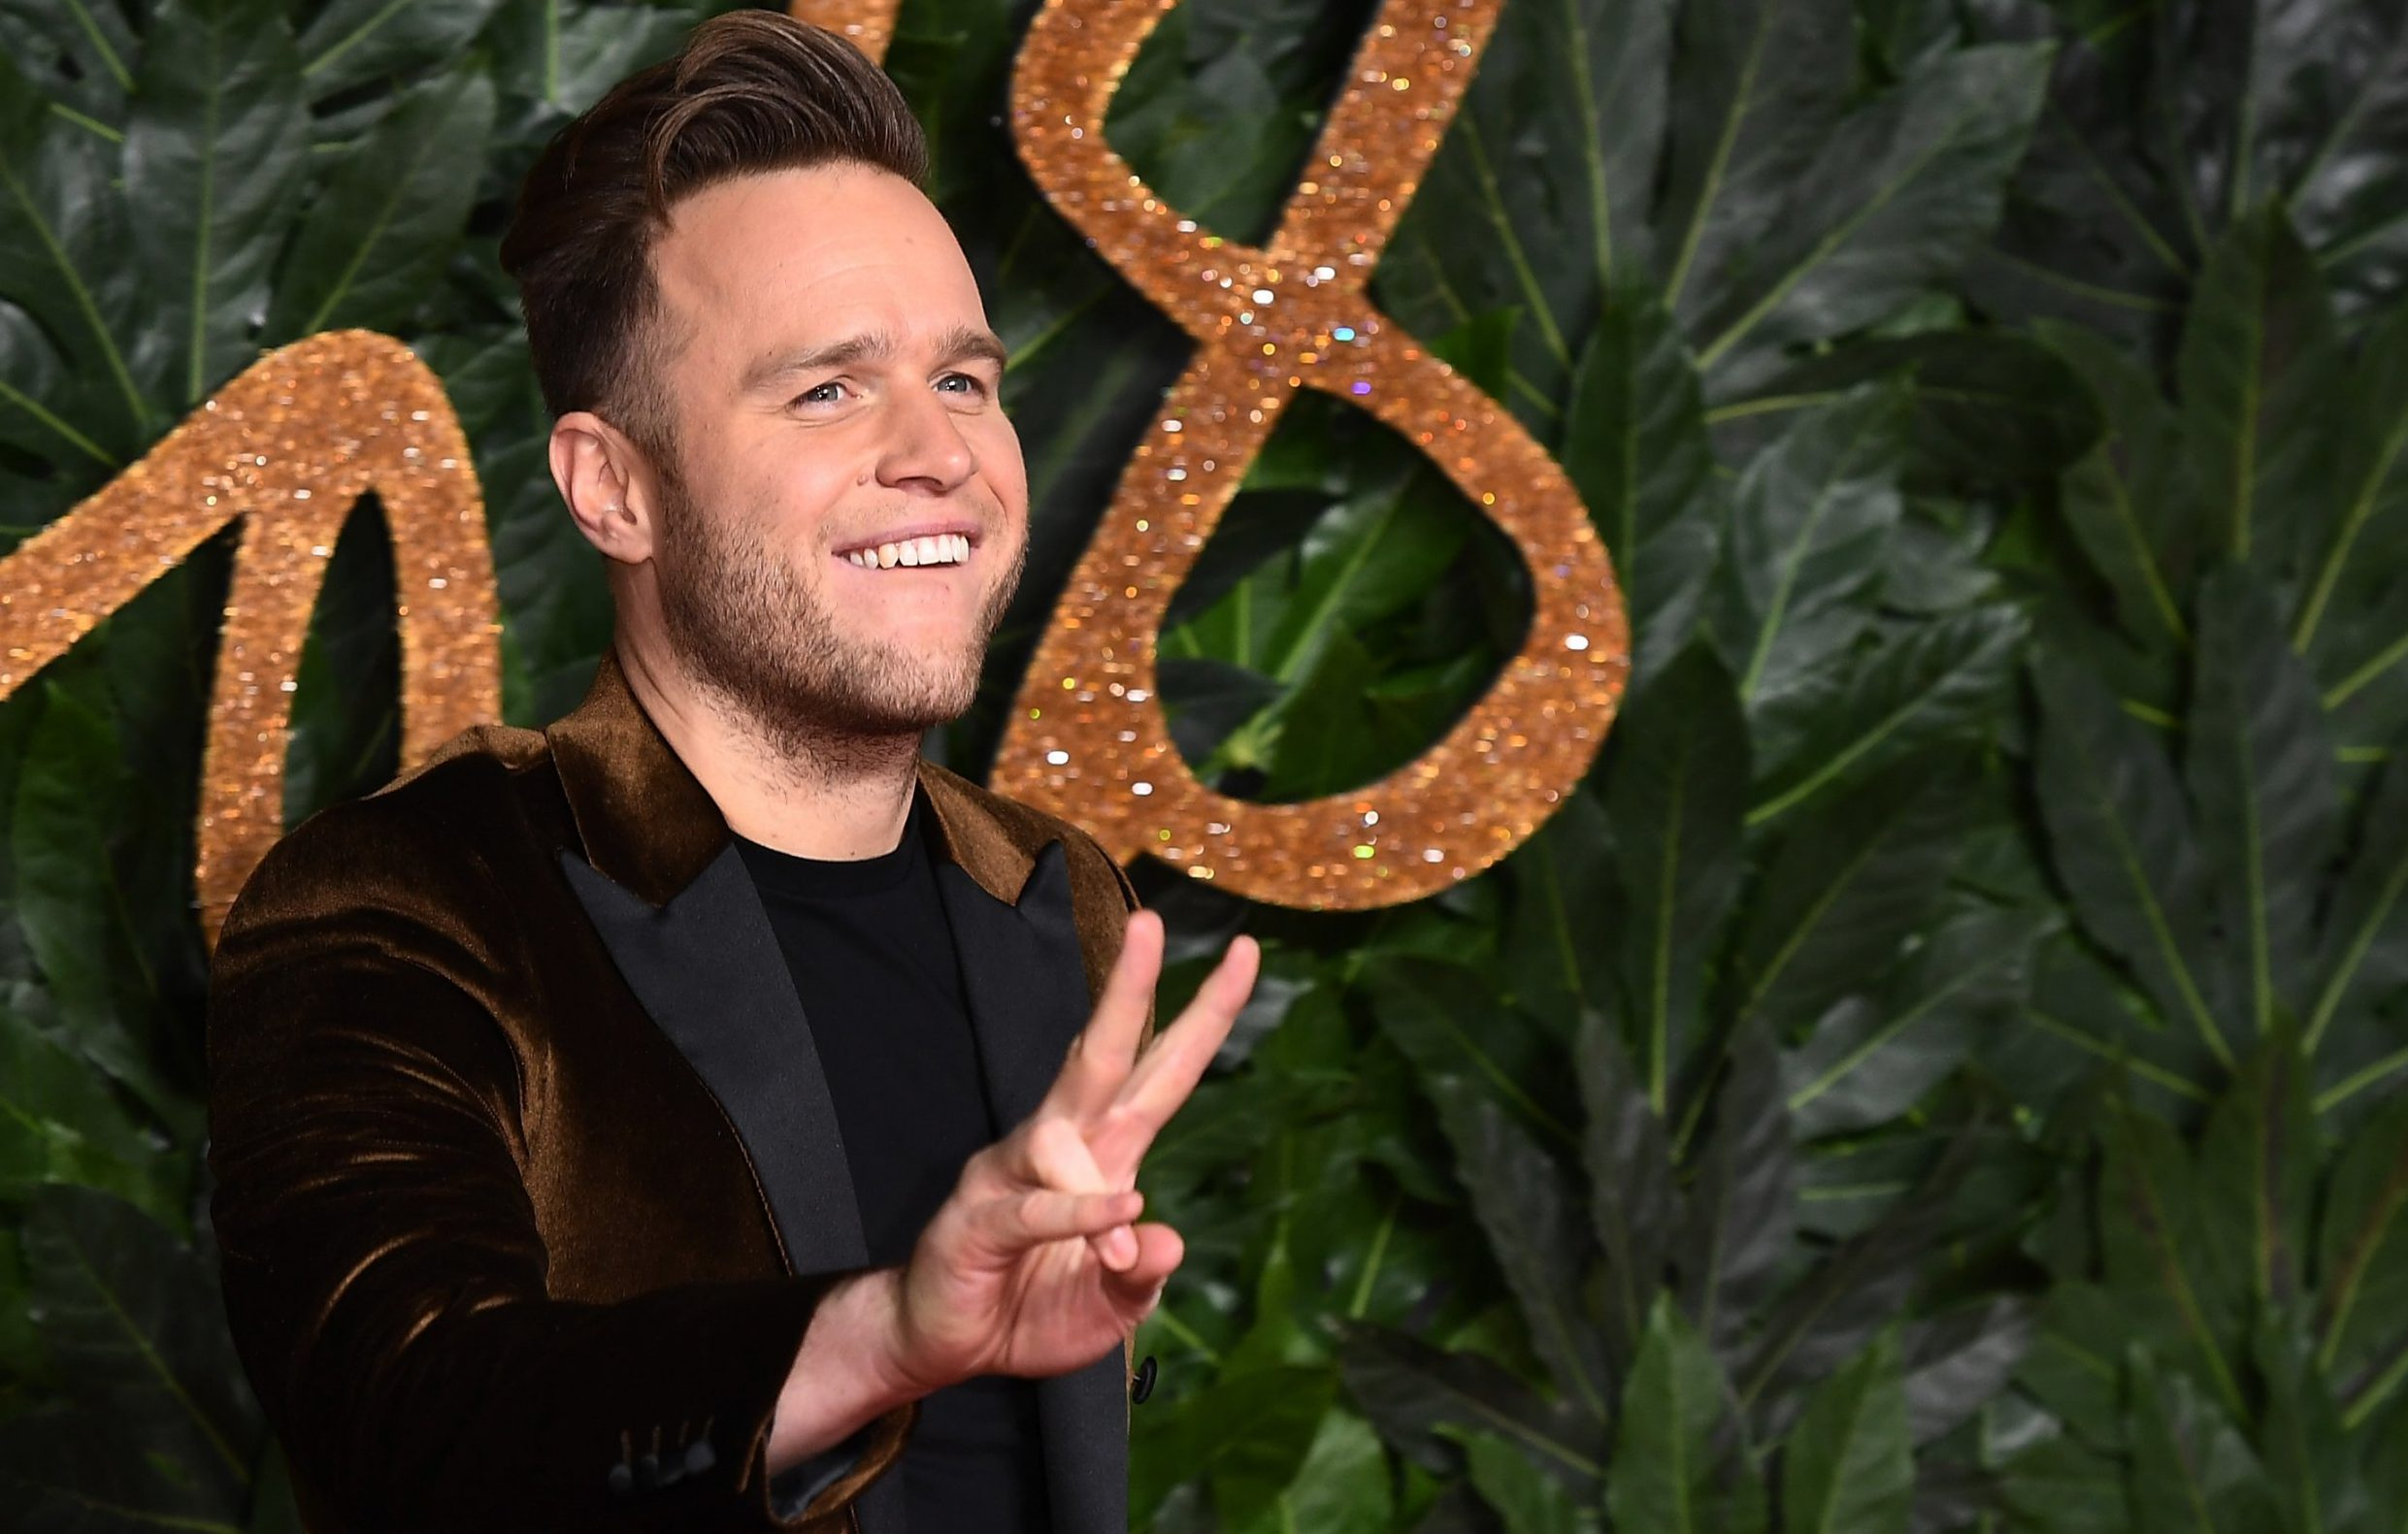 Olly Murs turns down request from Strictly Come Dancing ever year – but is not ruling it out just yet